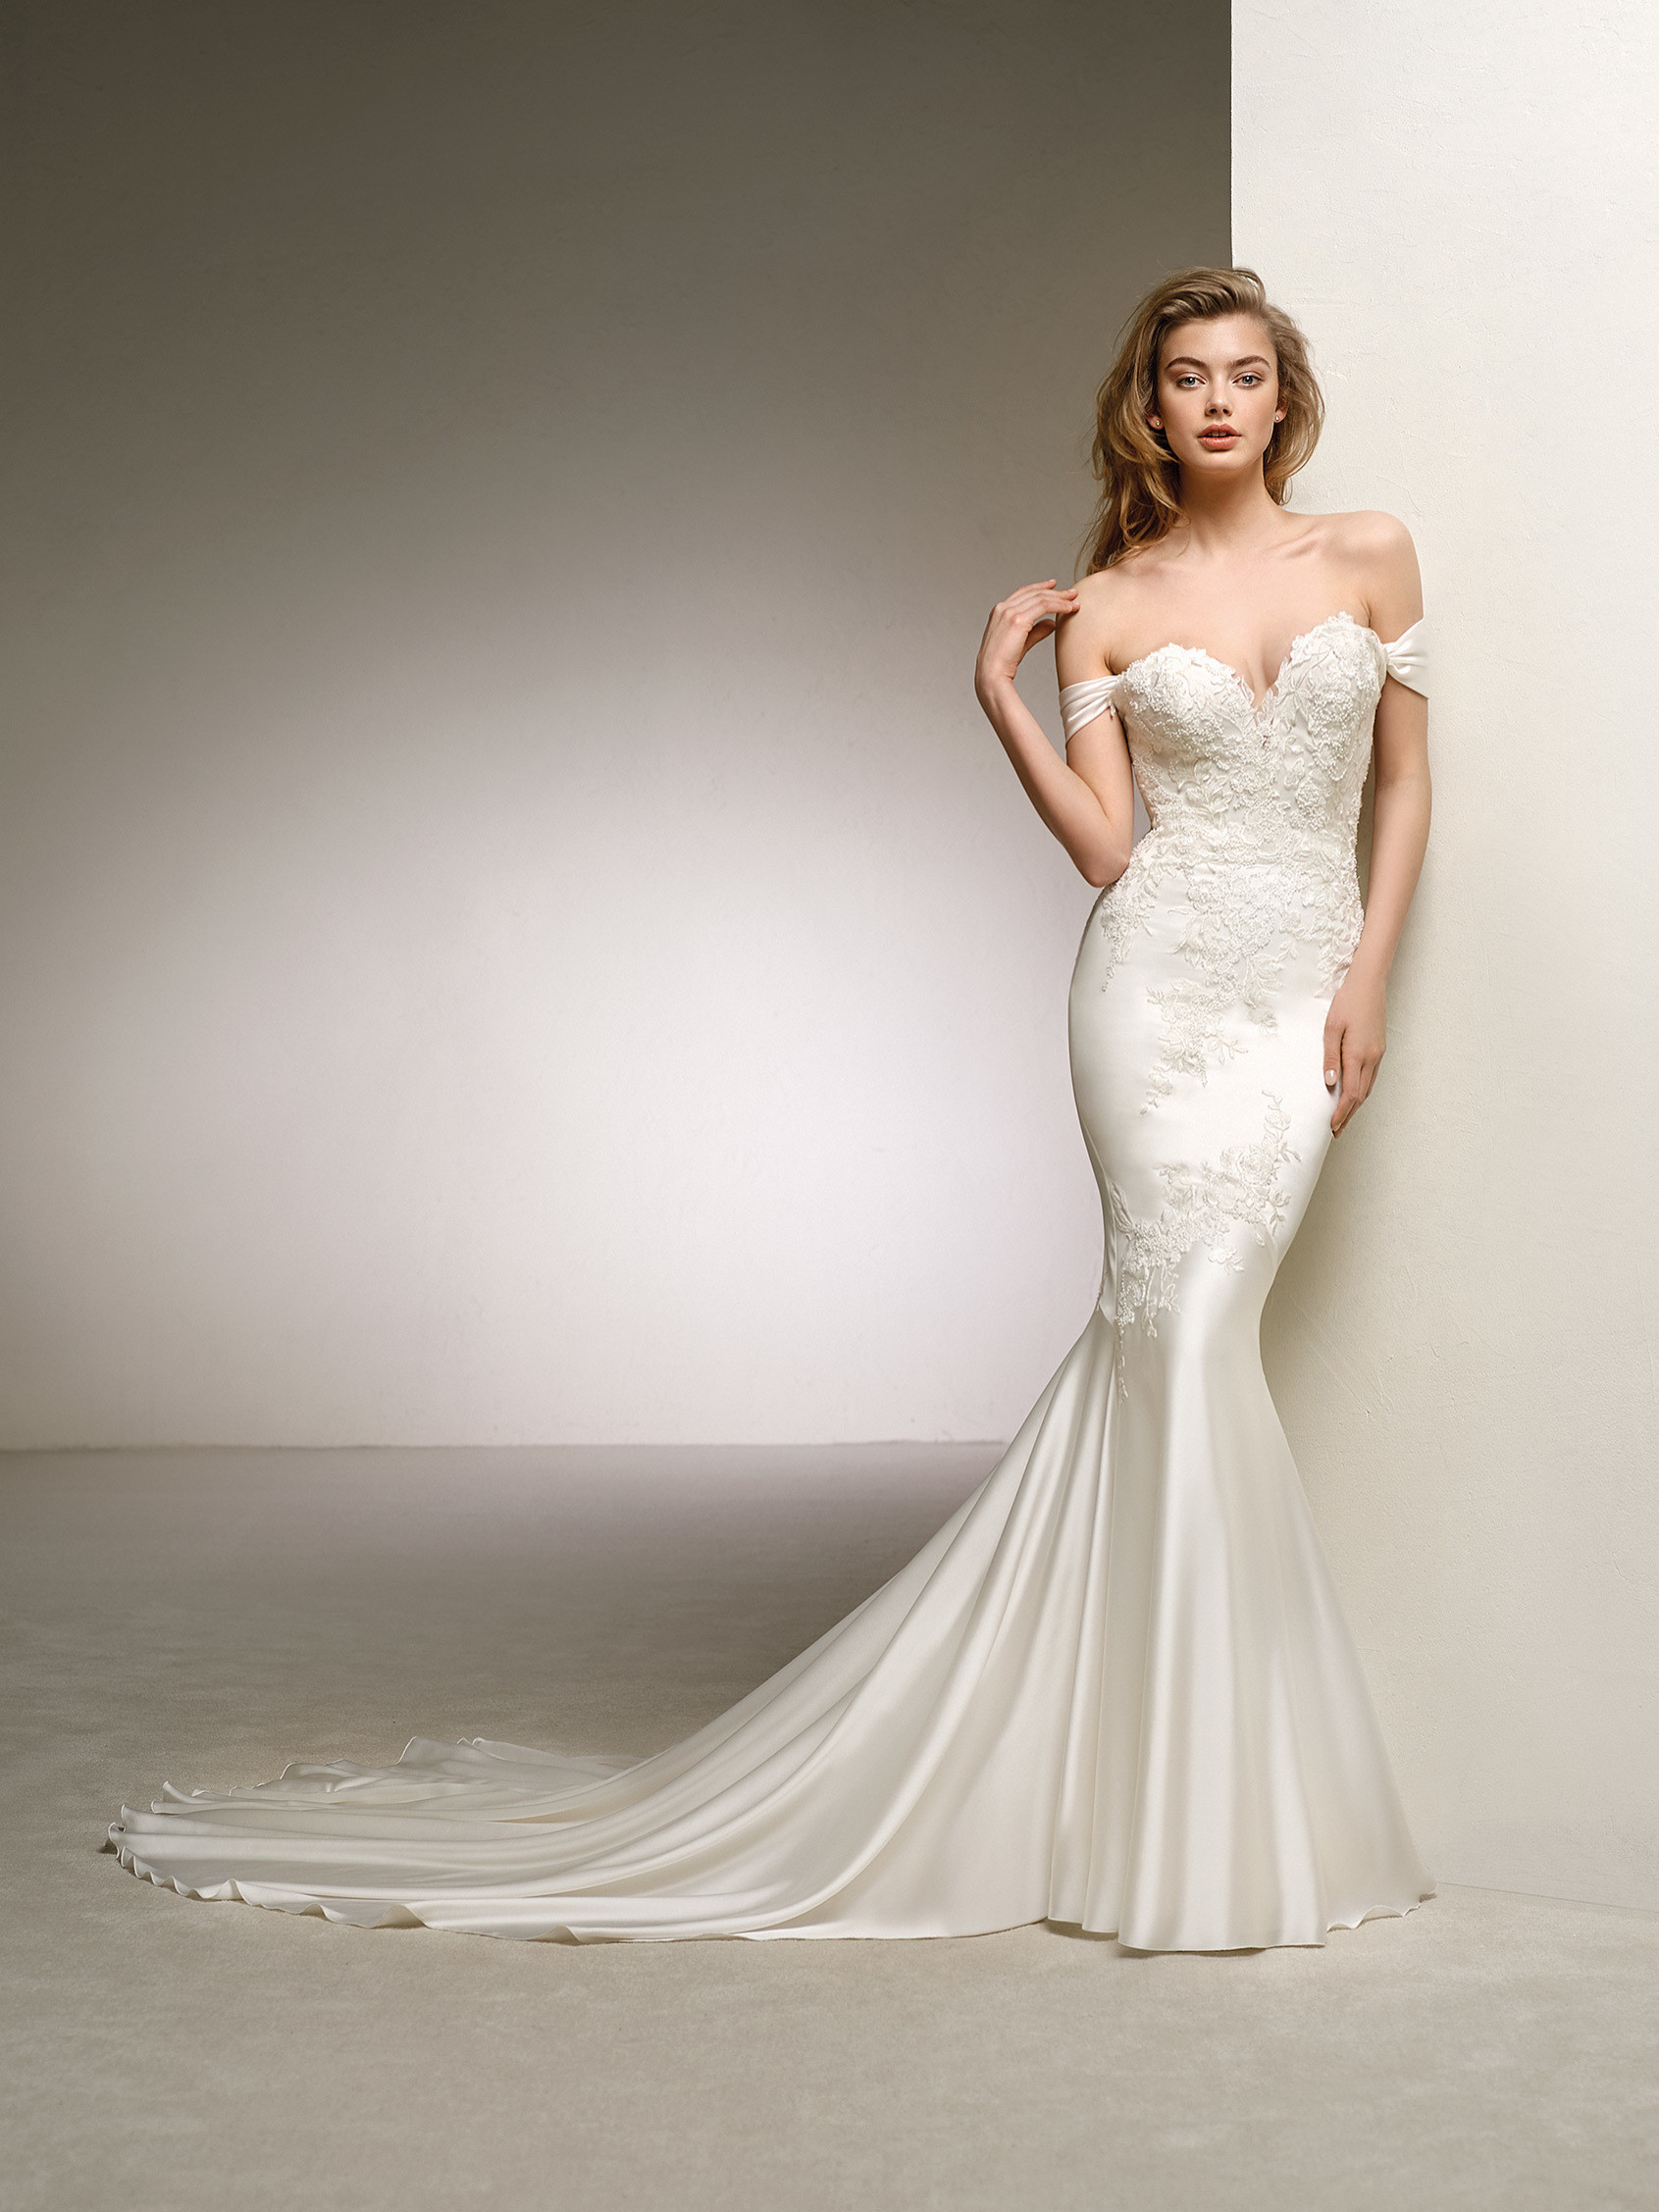 e790422f235 Pronovias Wedding Dresses in Chicago at Simply Luxe